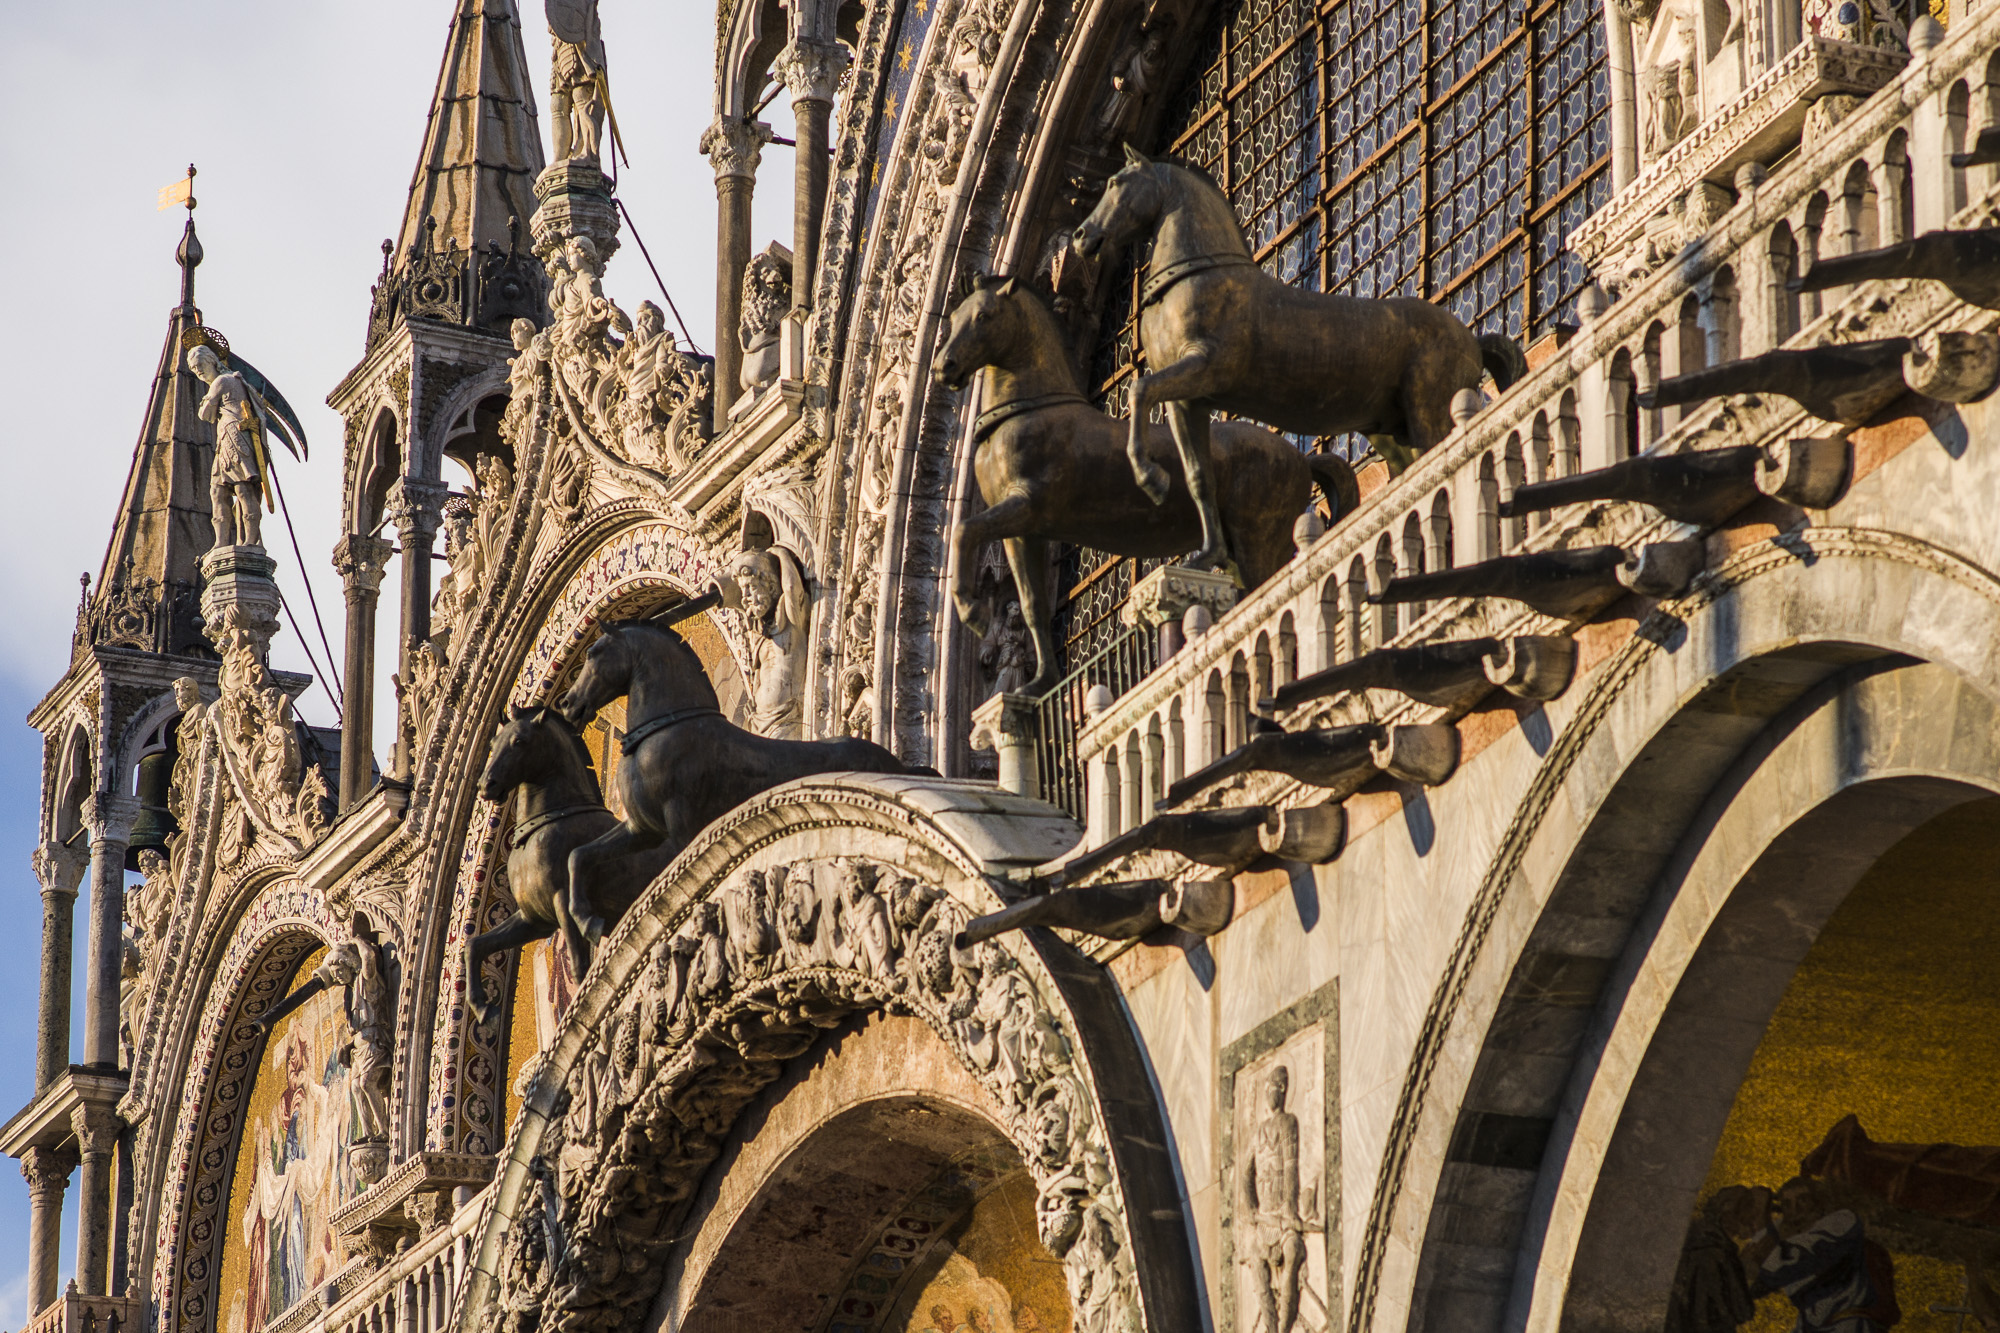 The bronze horses atop St Mark's in Venice courtesy of Constantinople